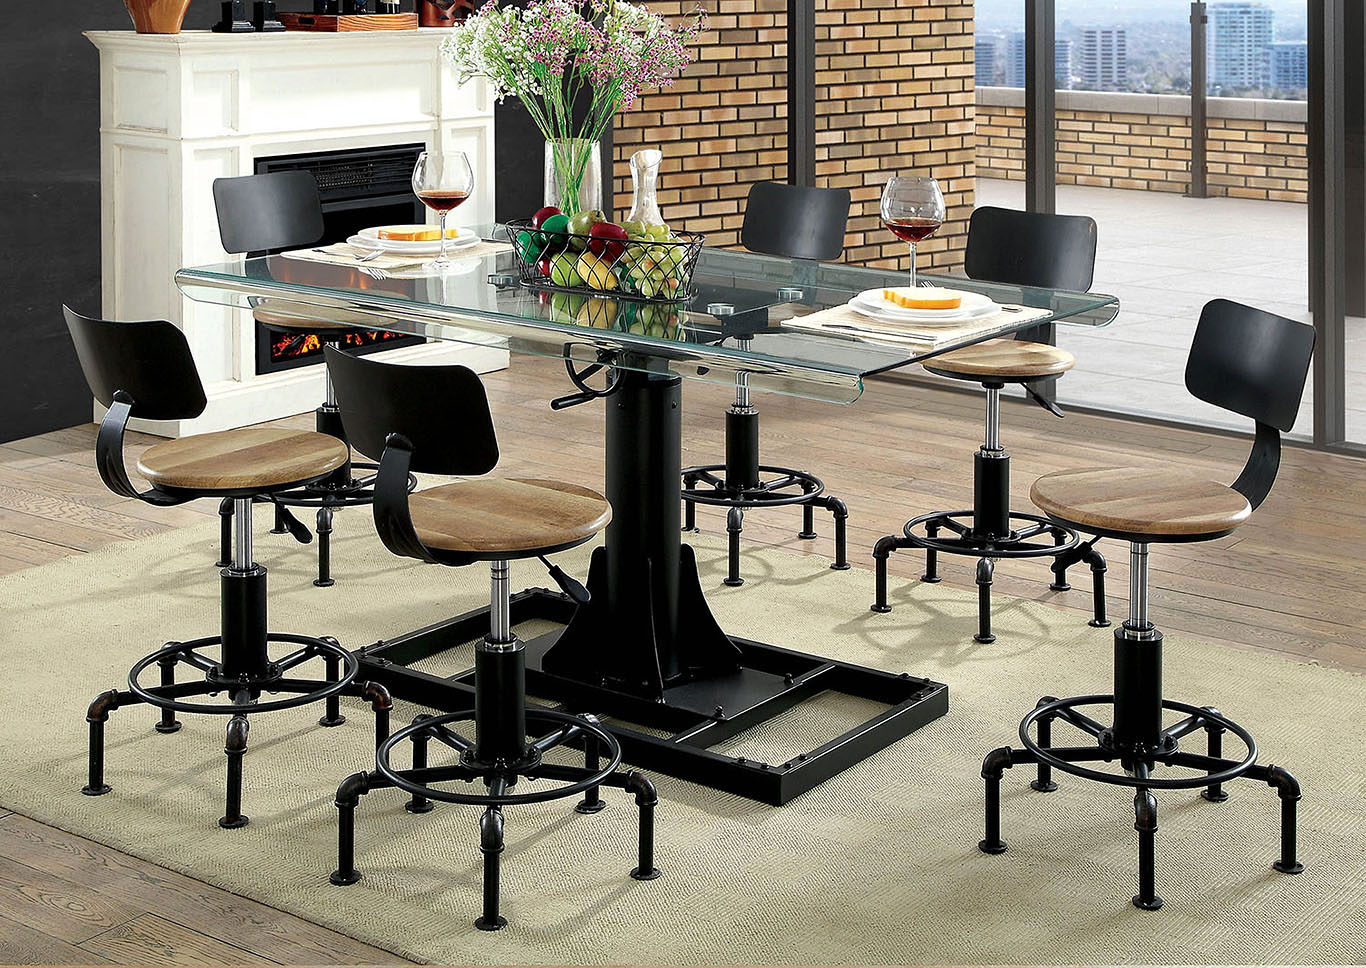 Killick Sand Black Dining Table w/10mm Beveled Glass Top,Furniture of America